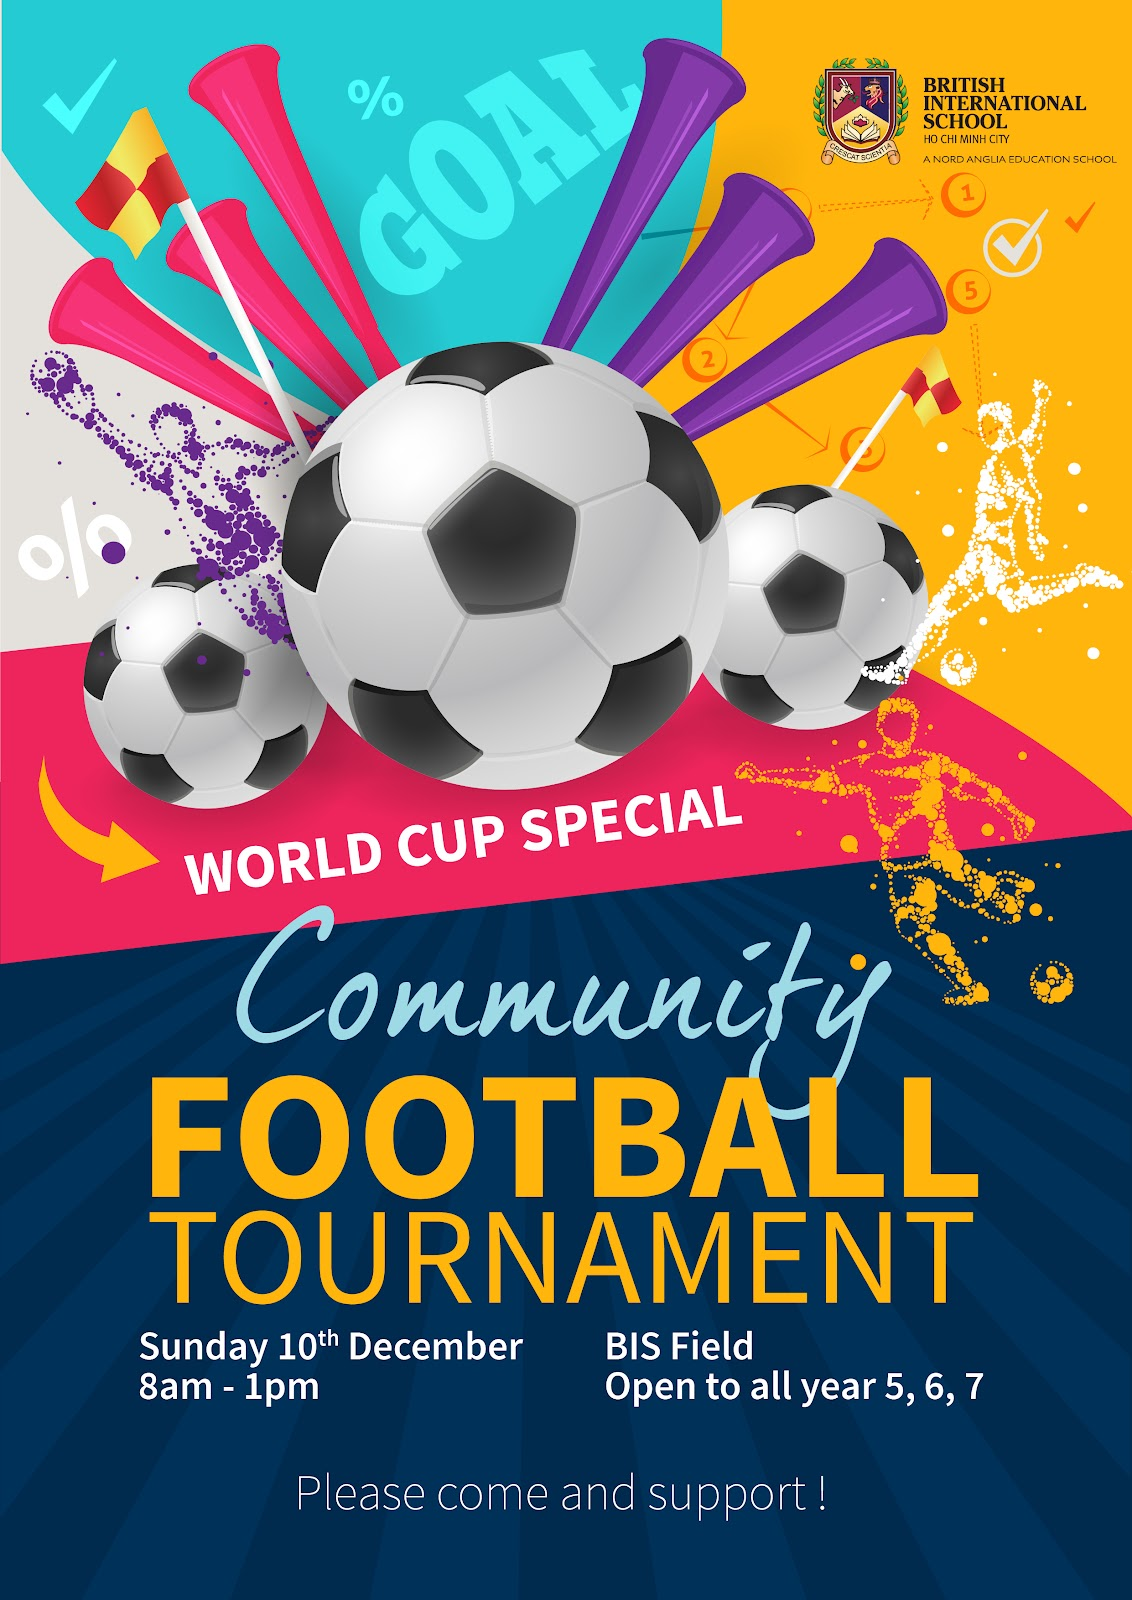 Community_Football_Tournament-02.jpg